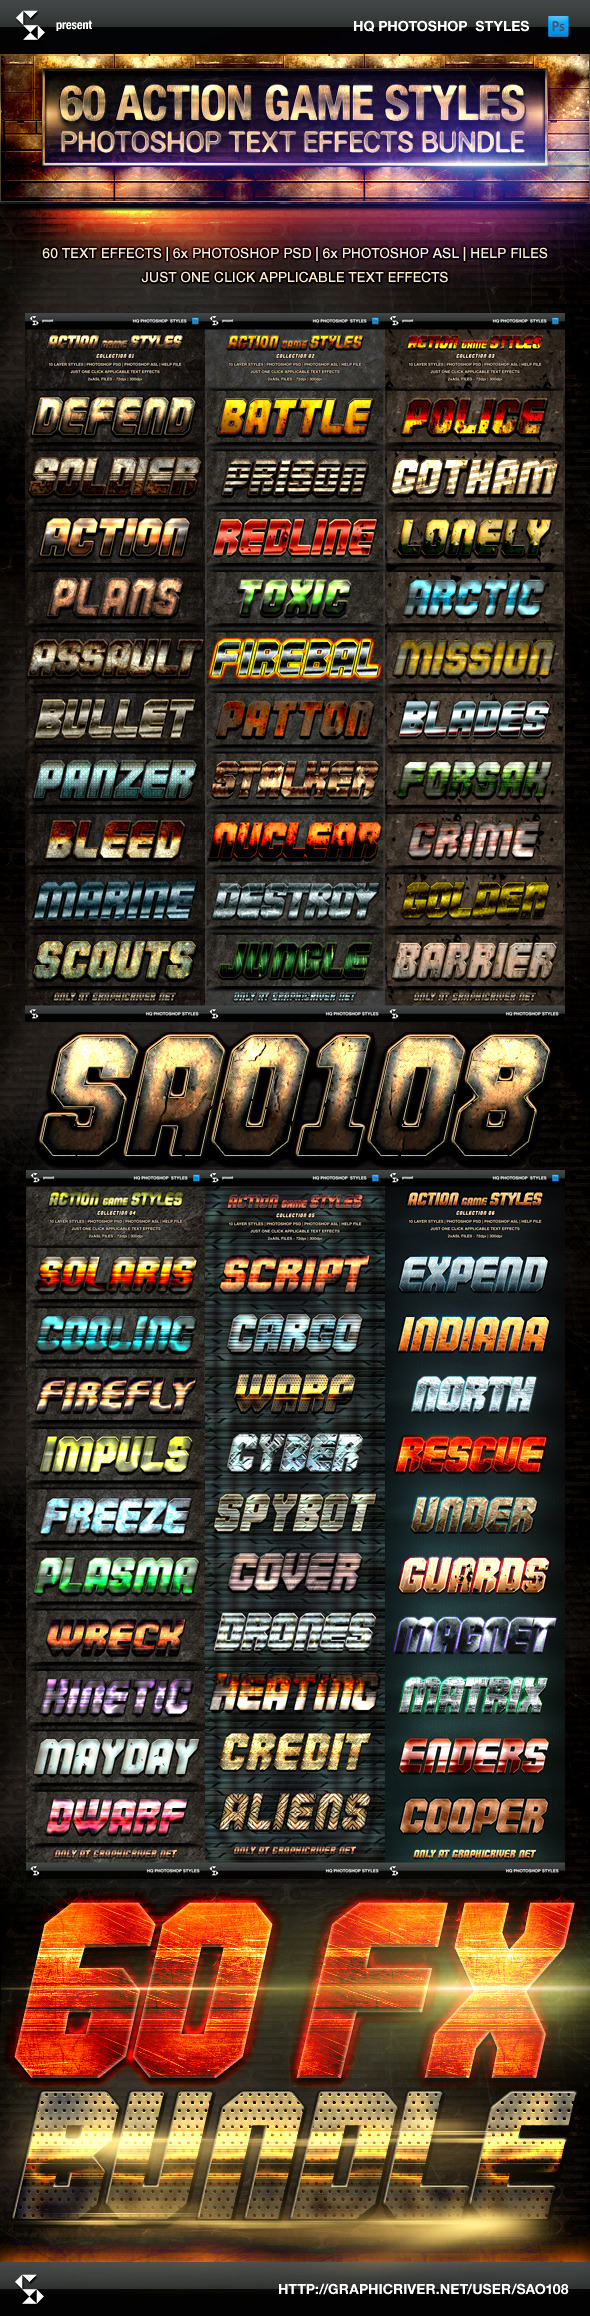 Action Game Styles Bundle - 60 Text Effects - Text Effects Styles